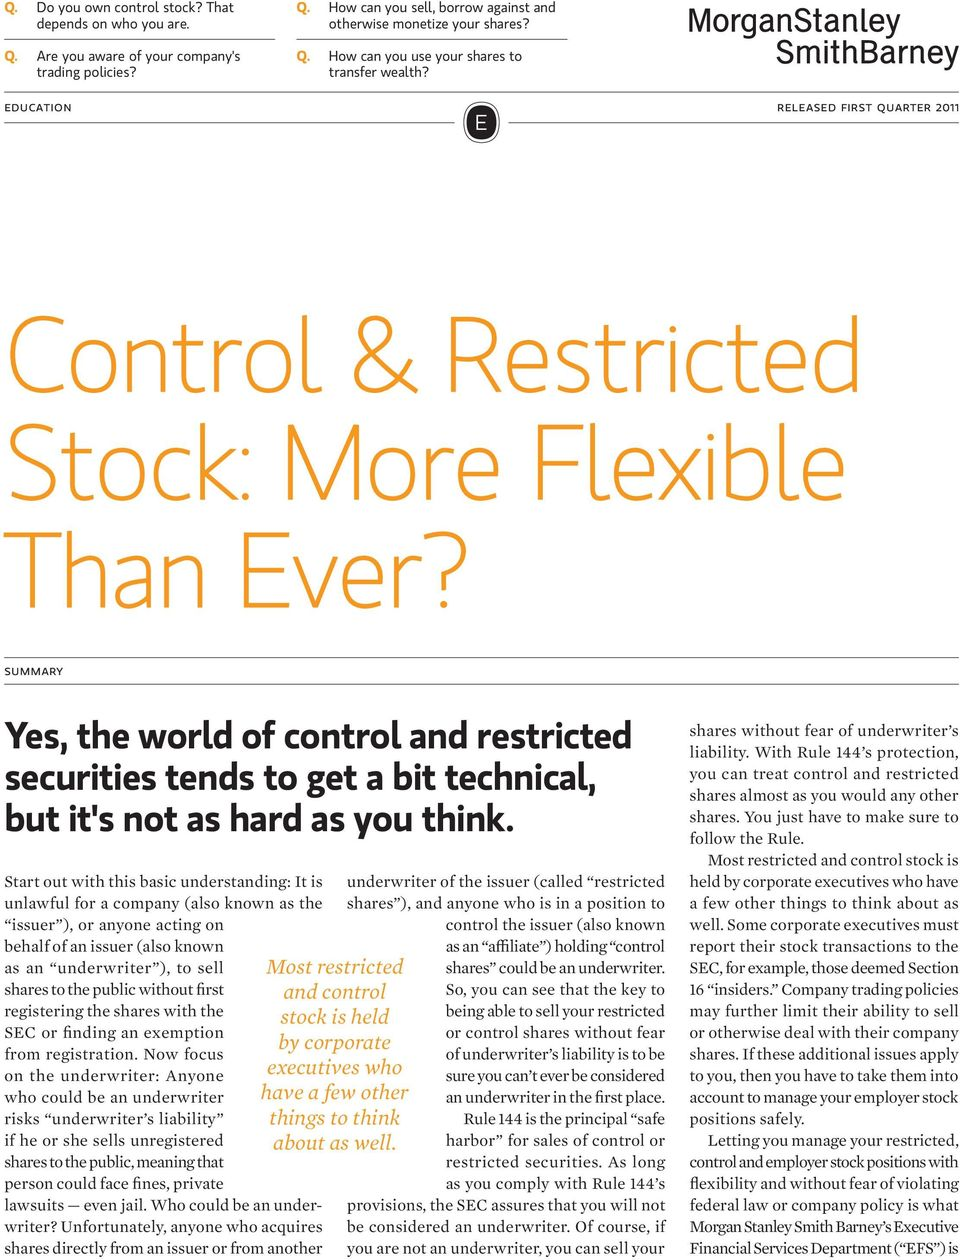 summary Yes, the world of control and restricted securities tends to get a bit technical, but it's not as hard as you think.